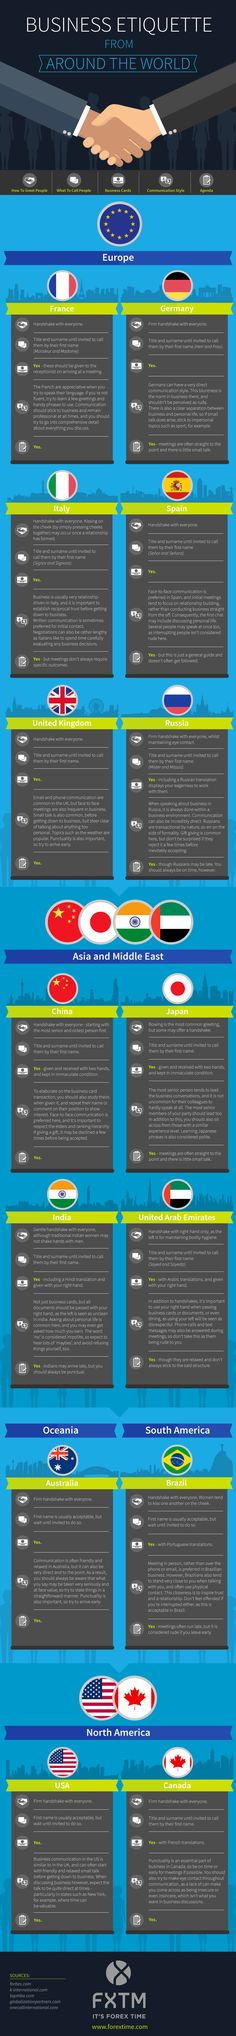 Best Business Etiquette Images  Business Marketing Business  Infographic Business Etiquette Basics From Around The Worldknow These  Cultural Differences Before